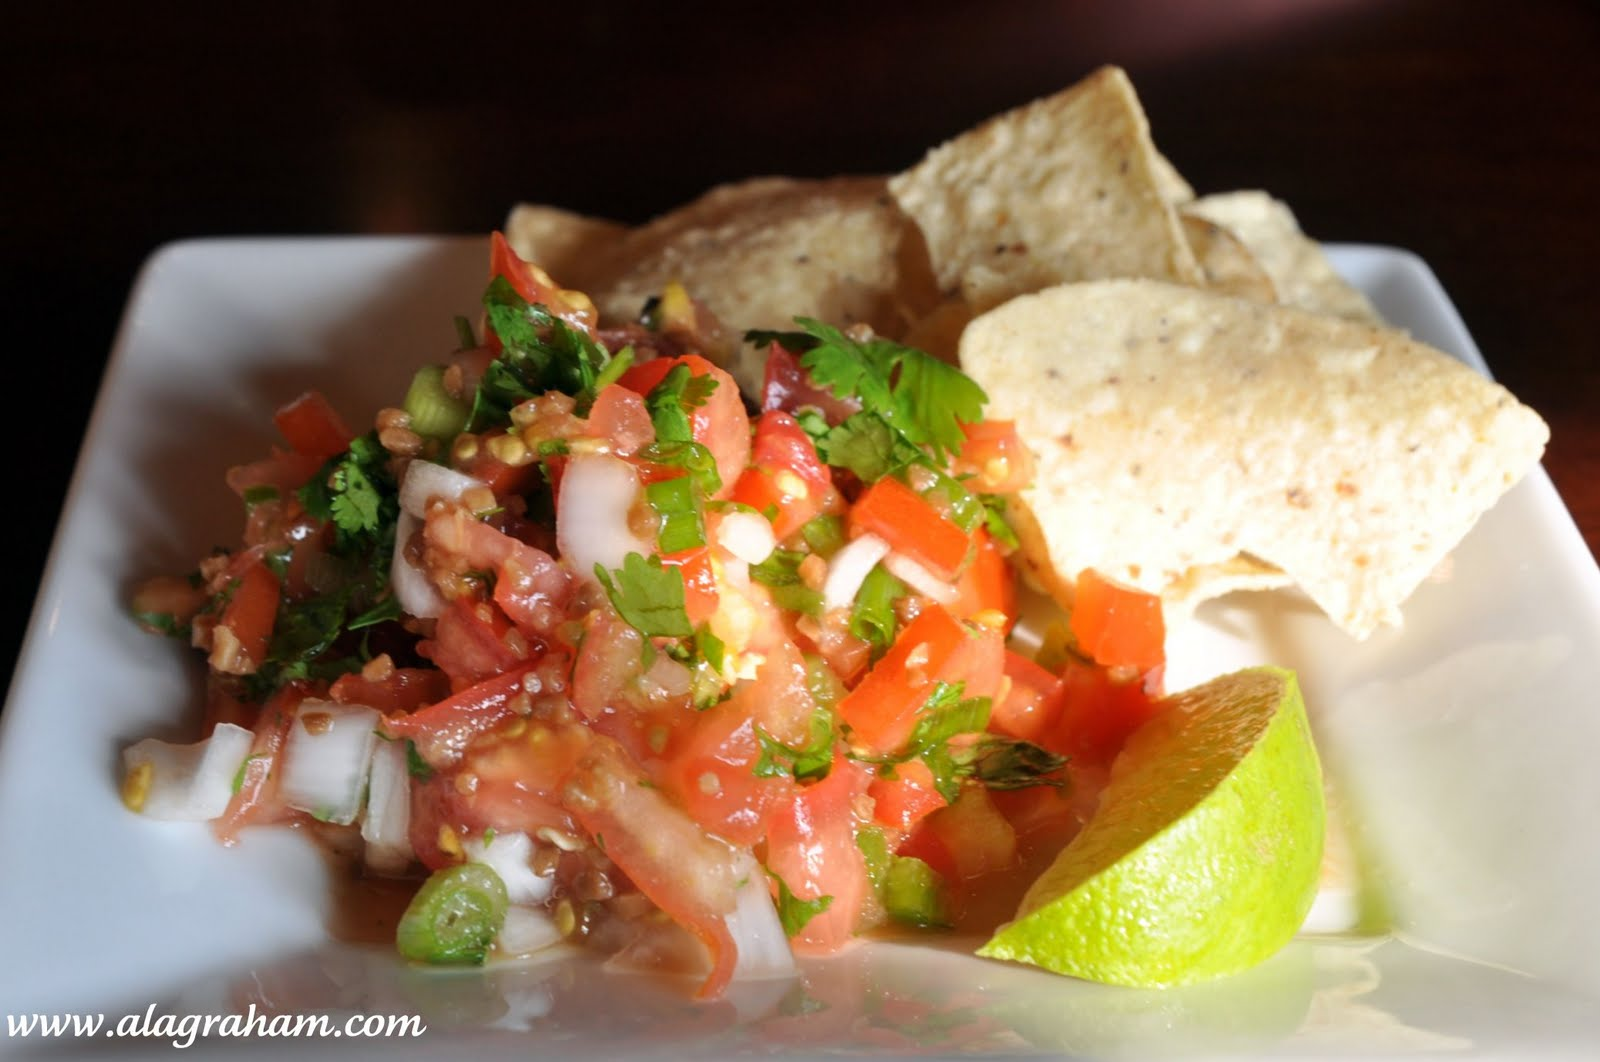 LA GRAHAM: PICO DE GALLO & GUACAMOLE- CLEAN EATING